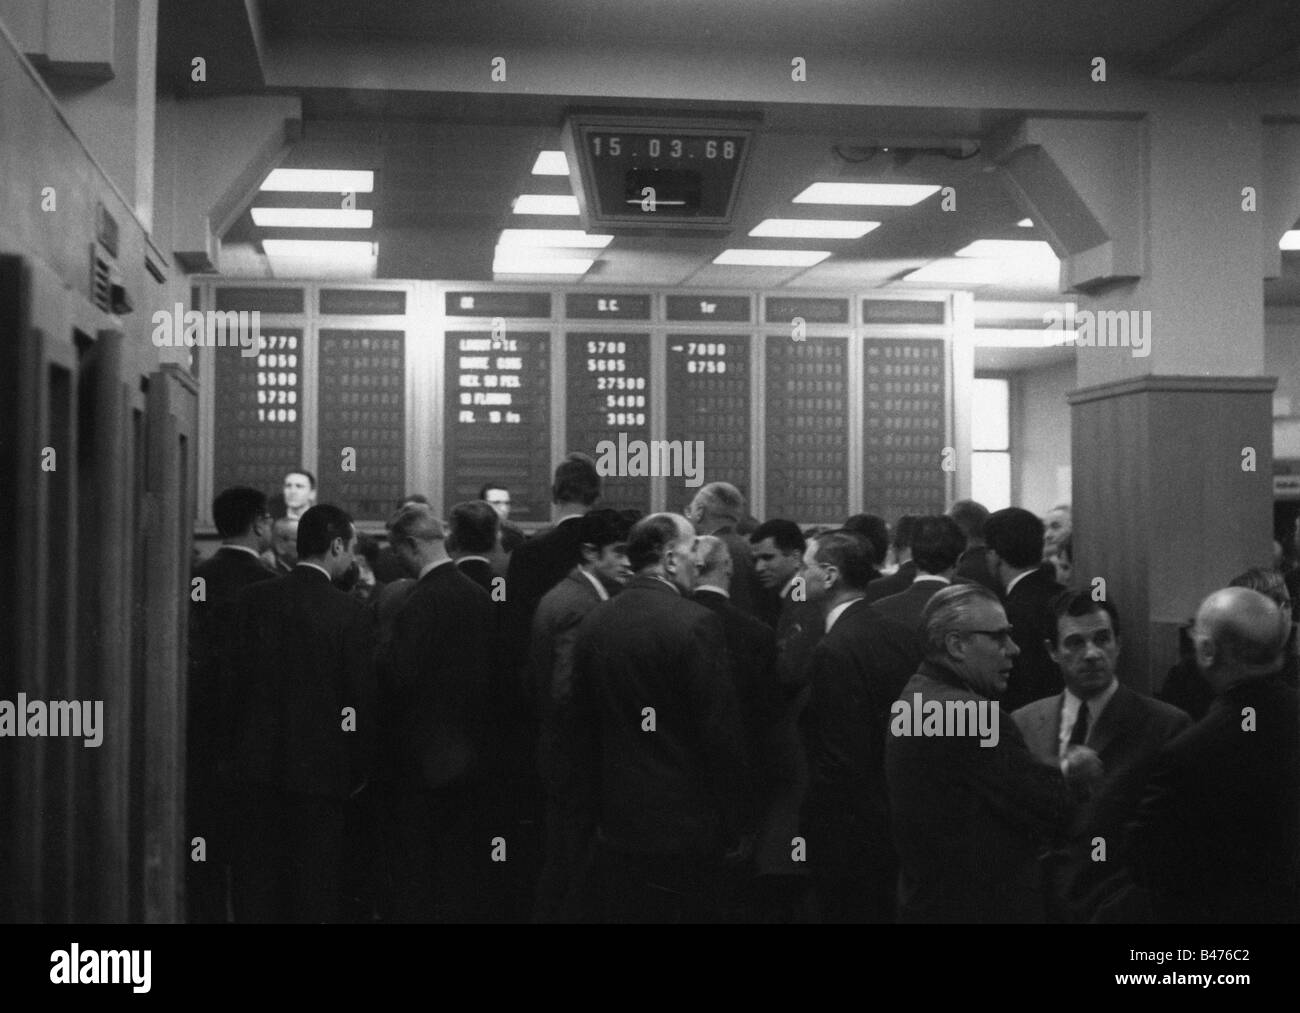 money / finance, exchanges, Paris, French Bullion Market, broker on the floor, 15.03.1968, Additional-Rights-Clearances - Stock Image